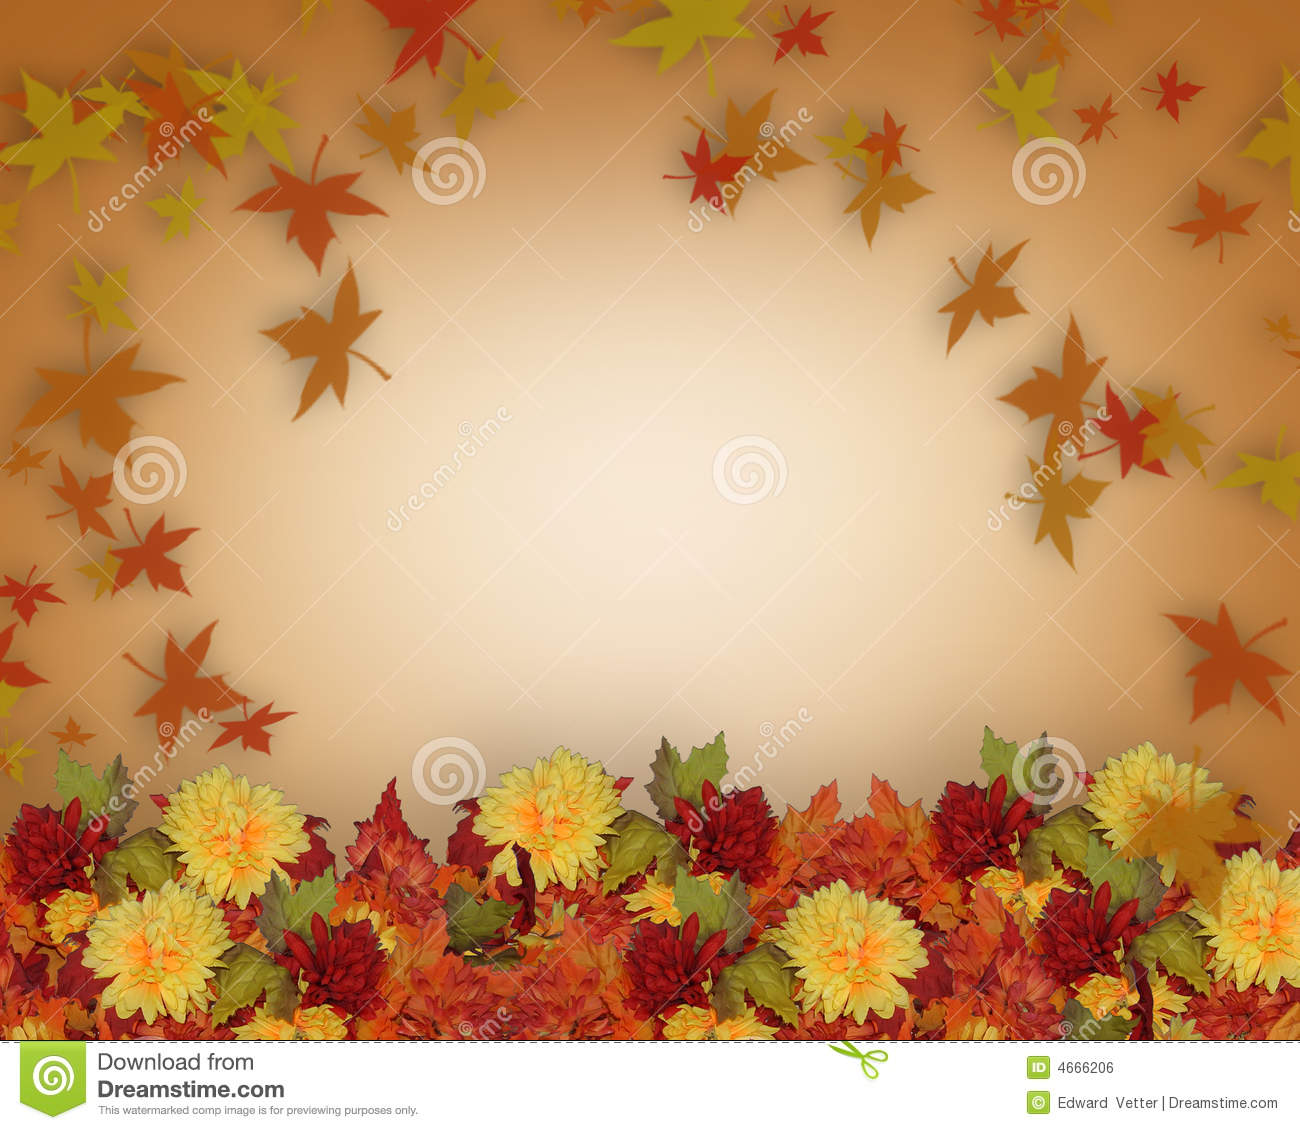 Thanksgiving Fall Leaves And Flowers Border Design Royalty